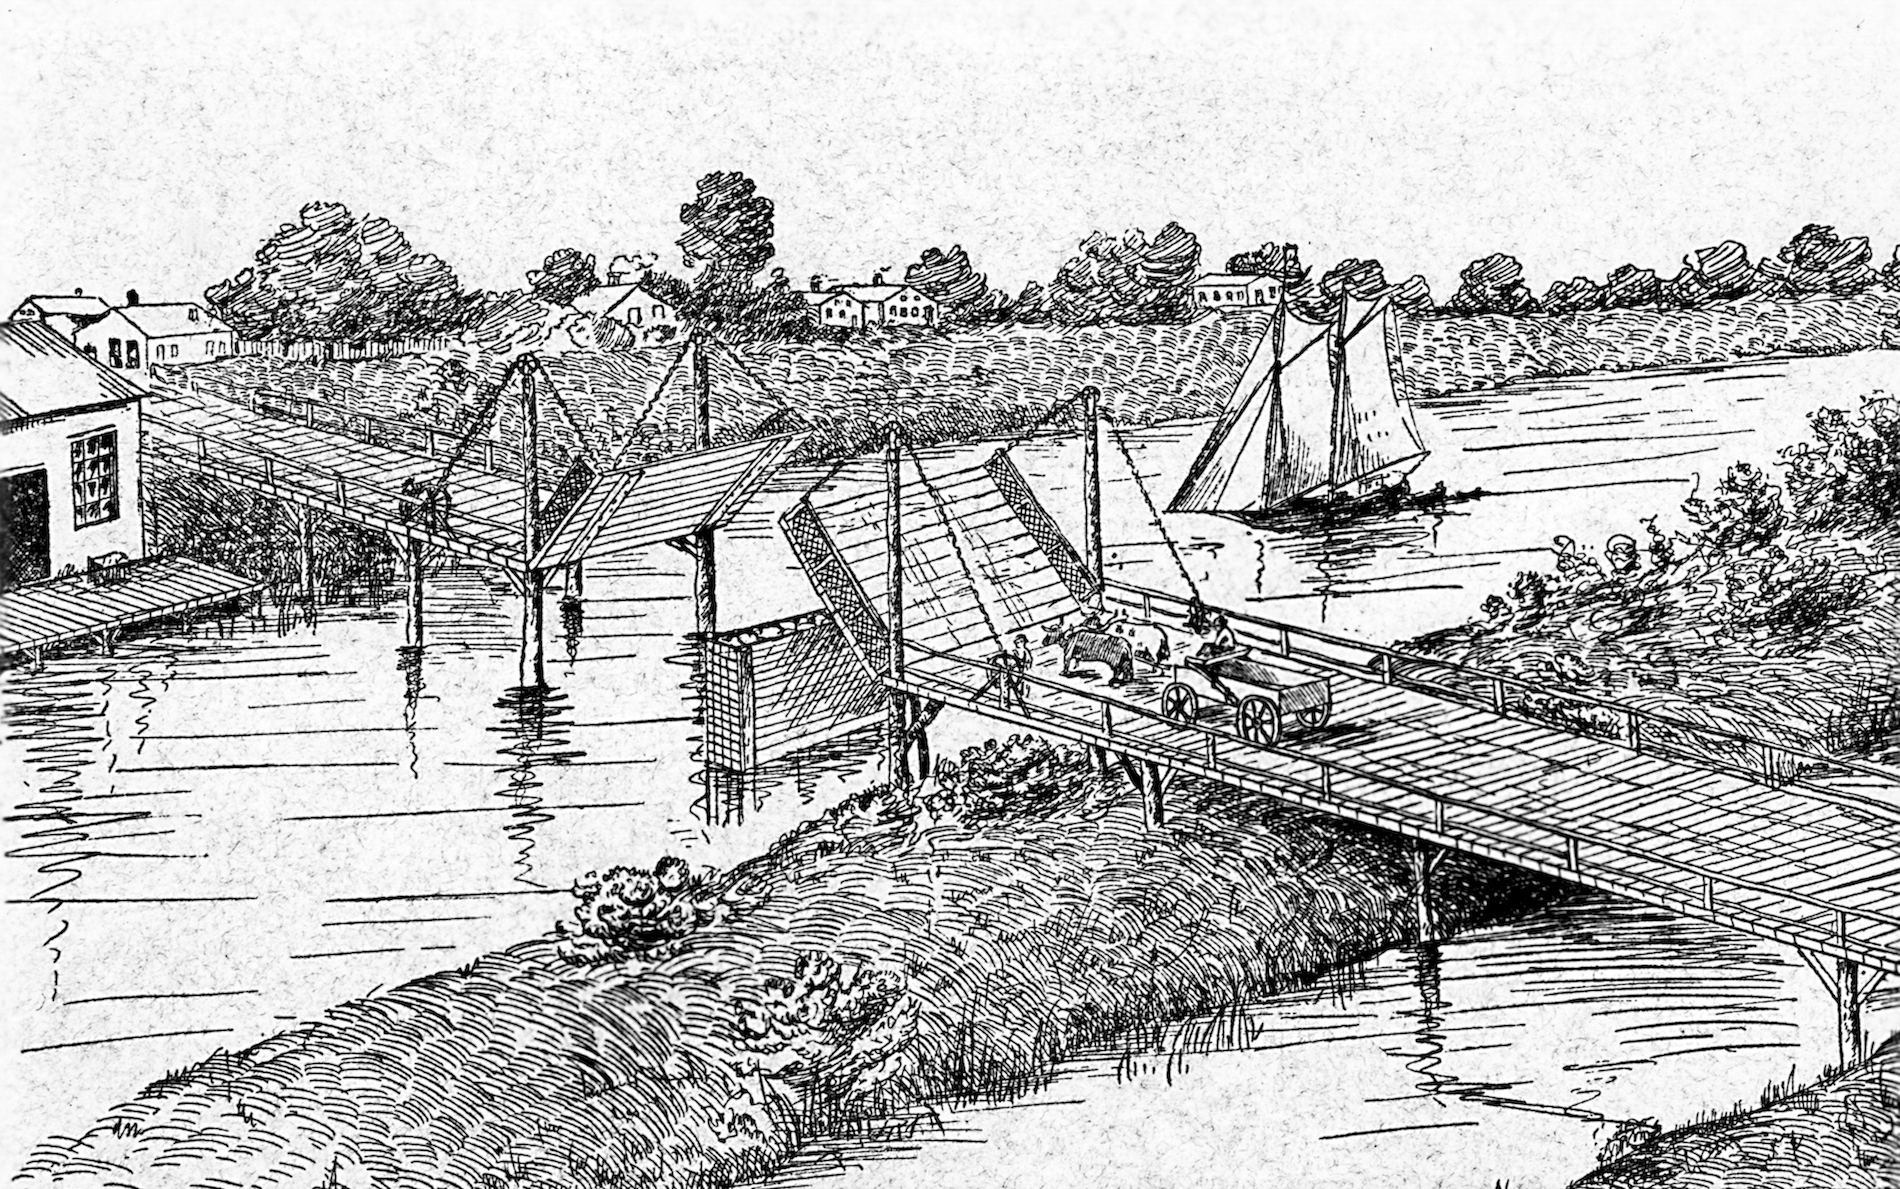 This sketch illustrates the Chestnut Street bridge that connected the east and west sides of early Milwaukee and stood at the center of the city's bridge war.